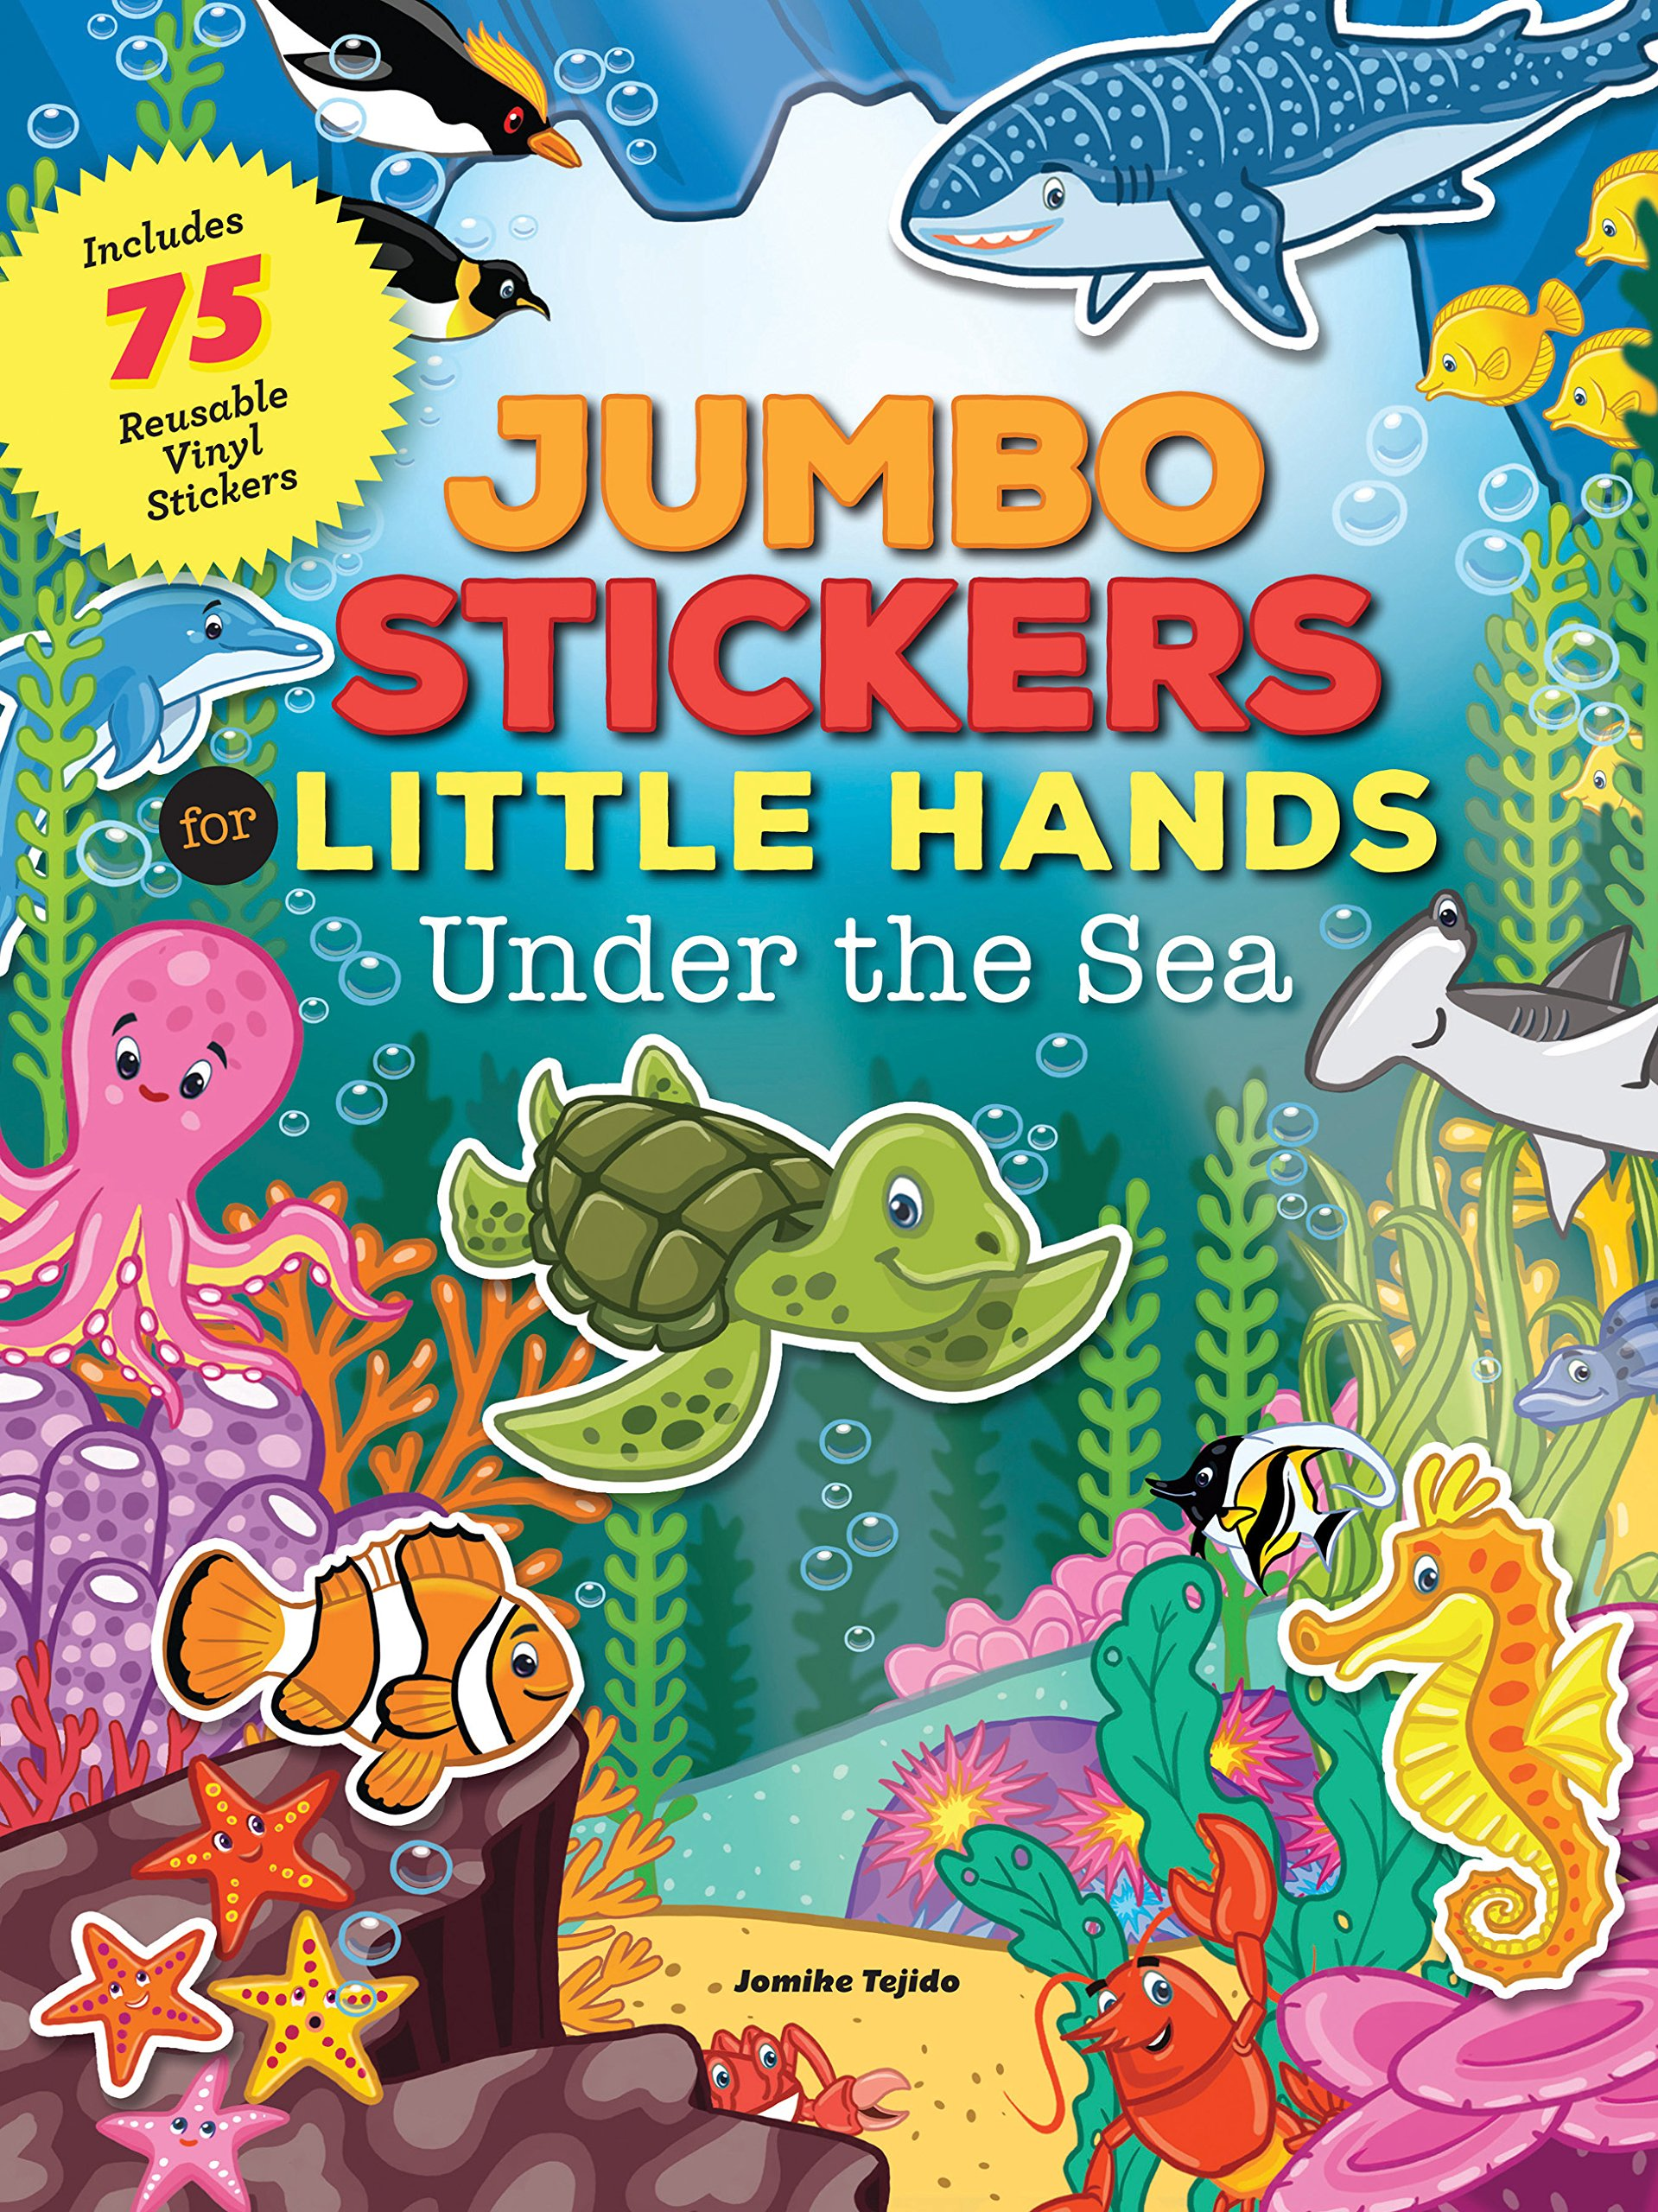 Download Jumbo Stickers for Little Hands: Under the Sea: Includes 75 Stickers ebook